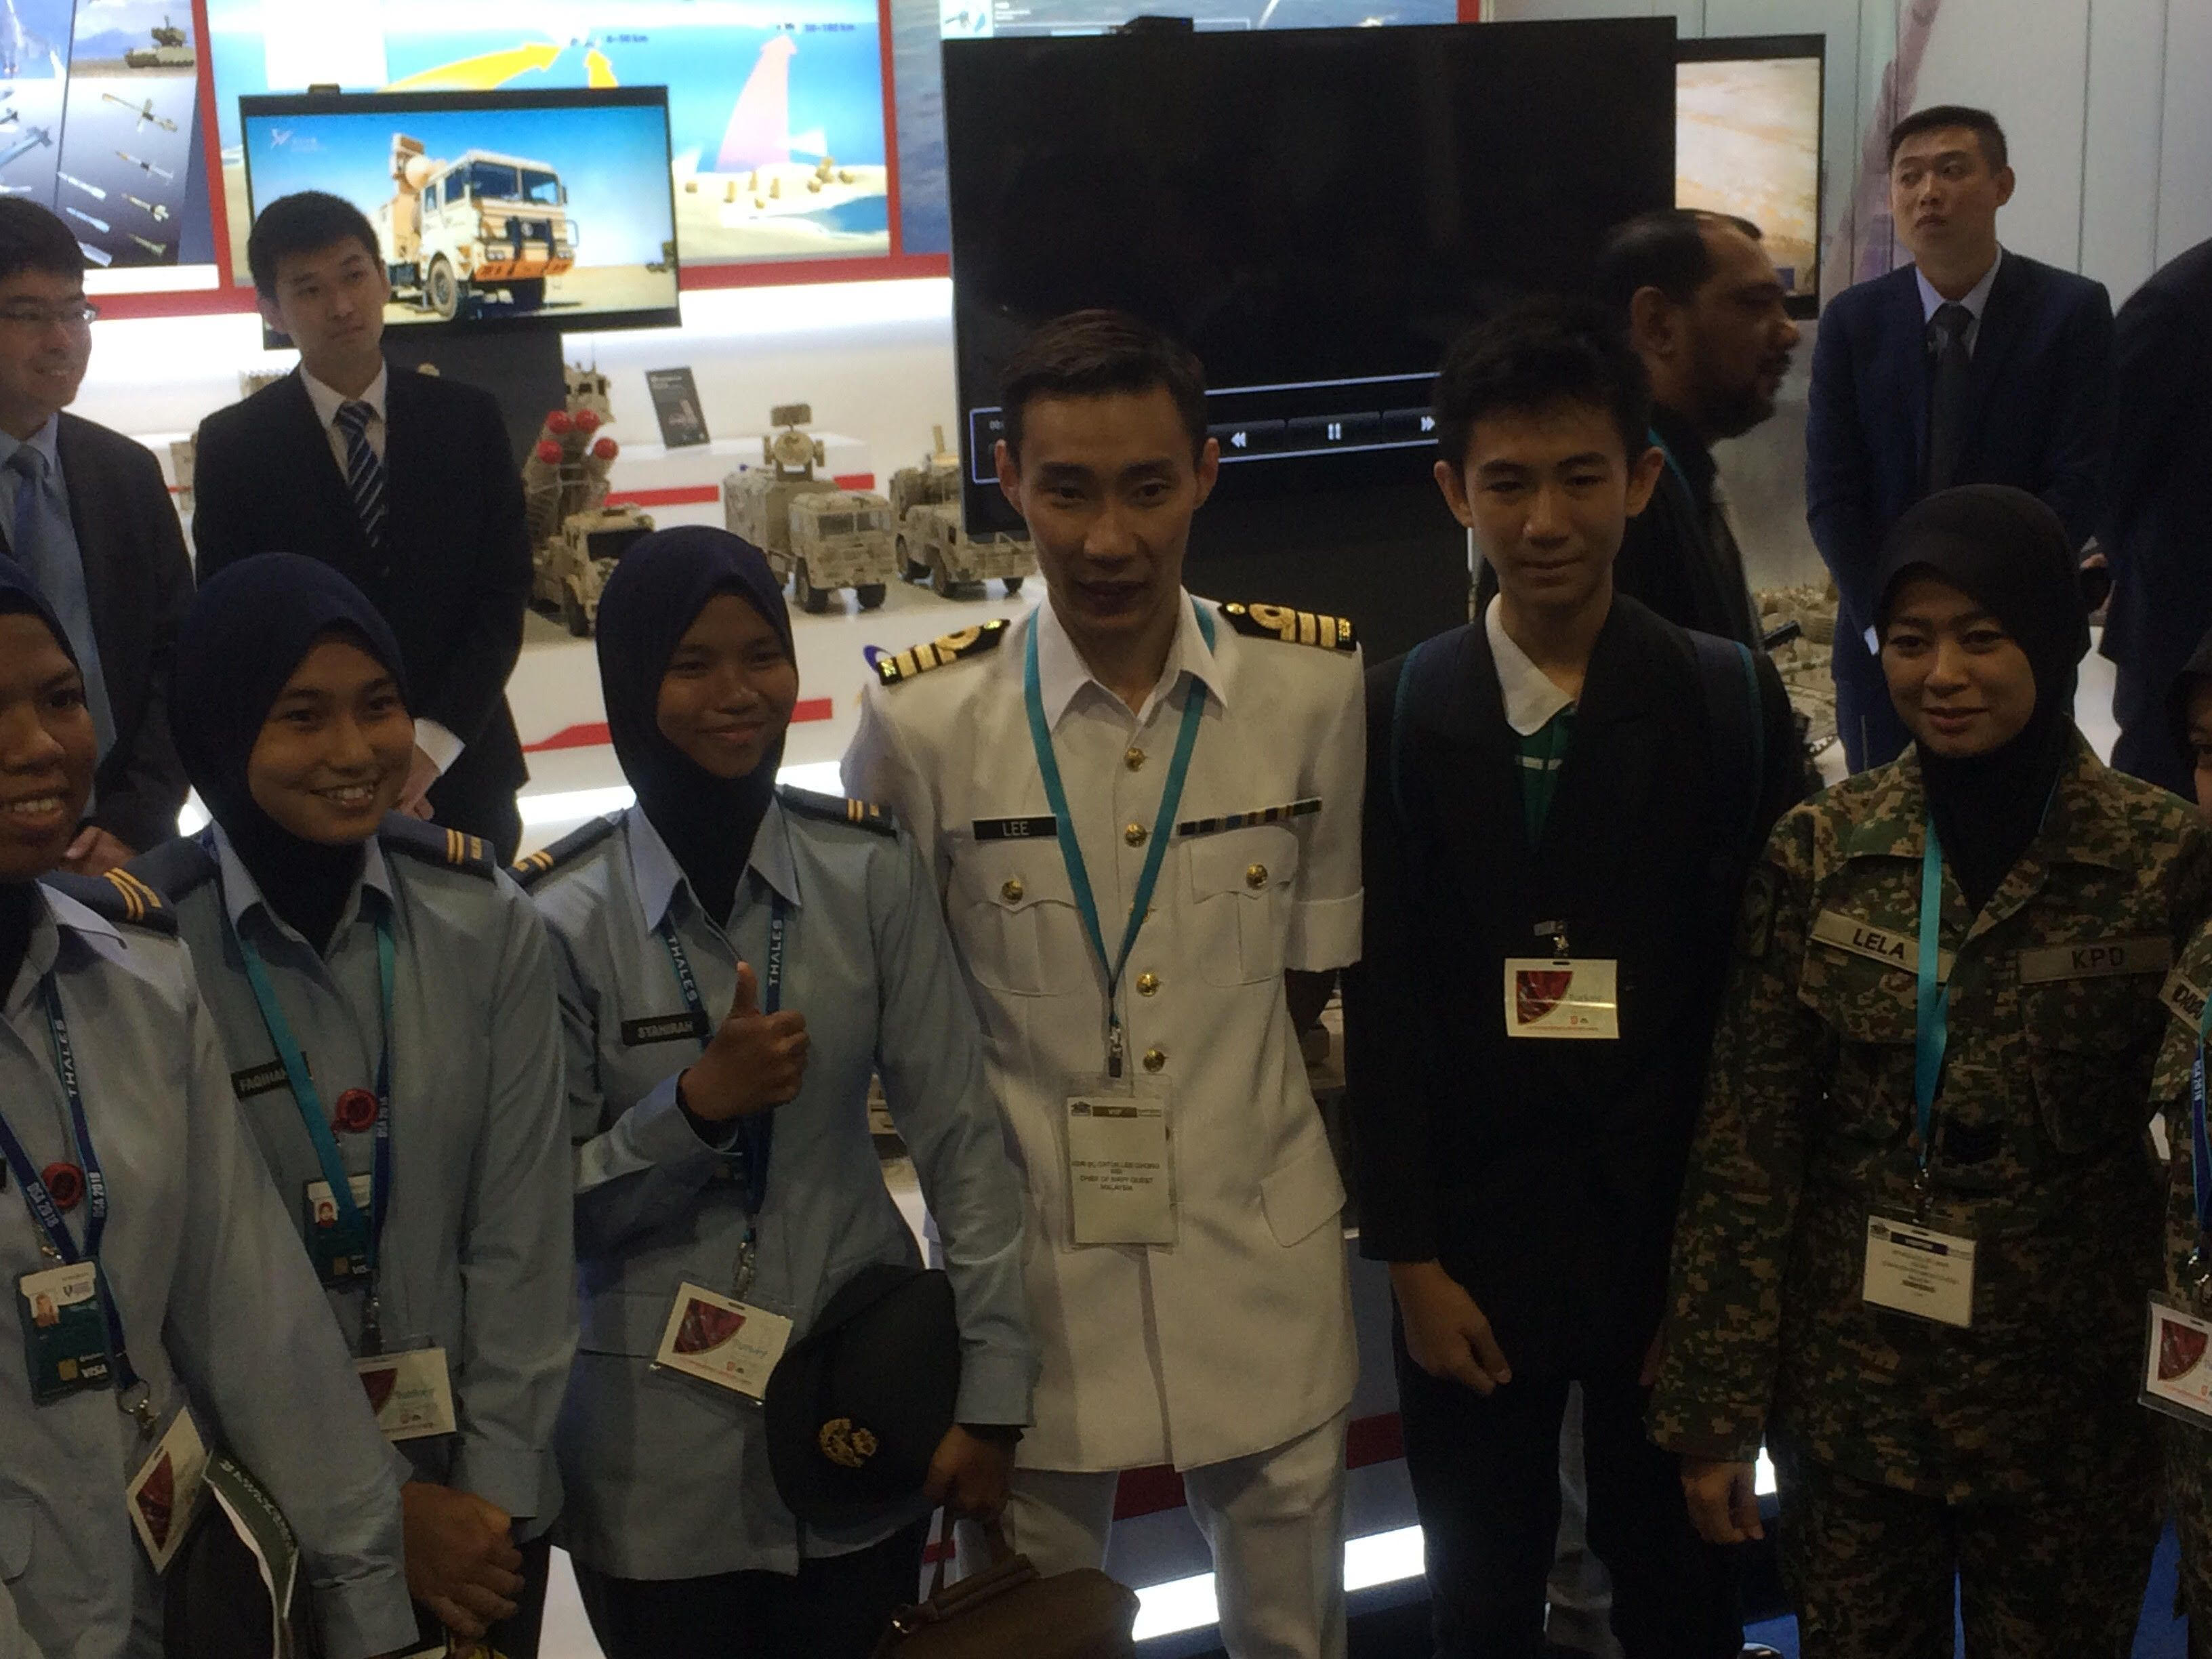 Lee Chong Wei makes special appearance at DSA security expo